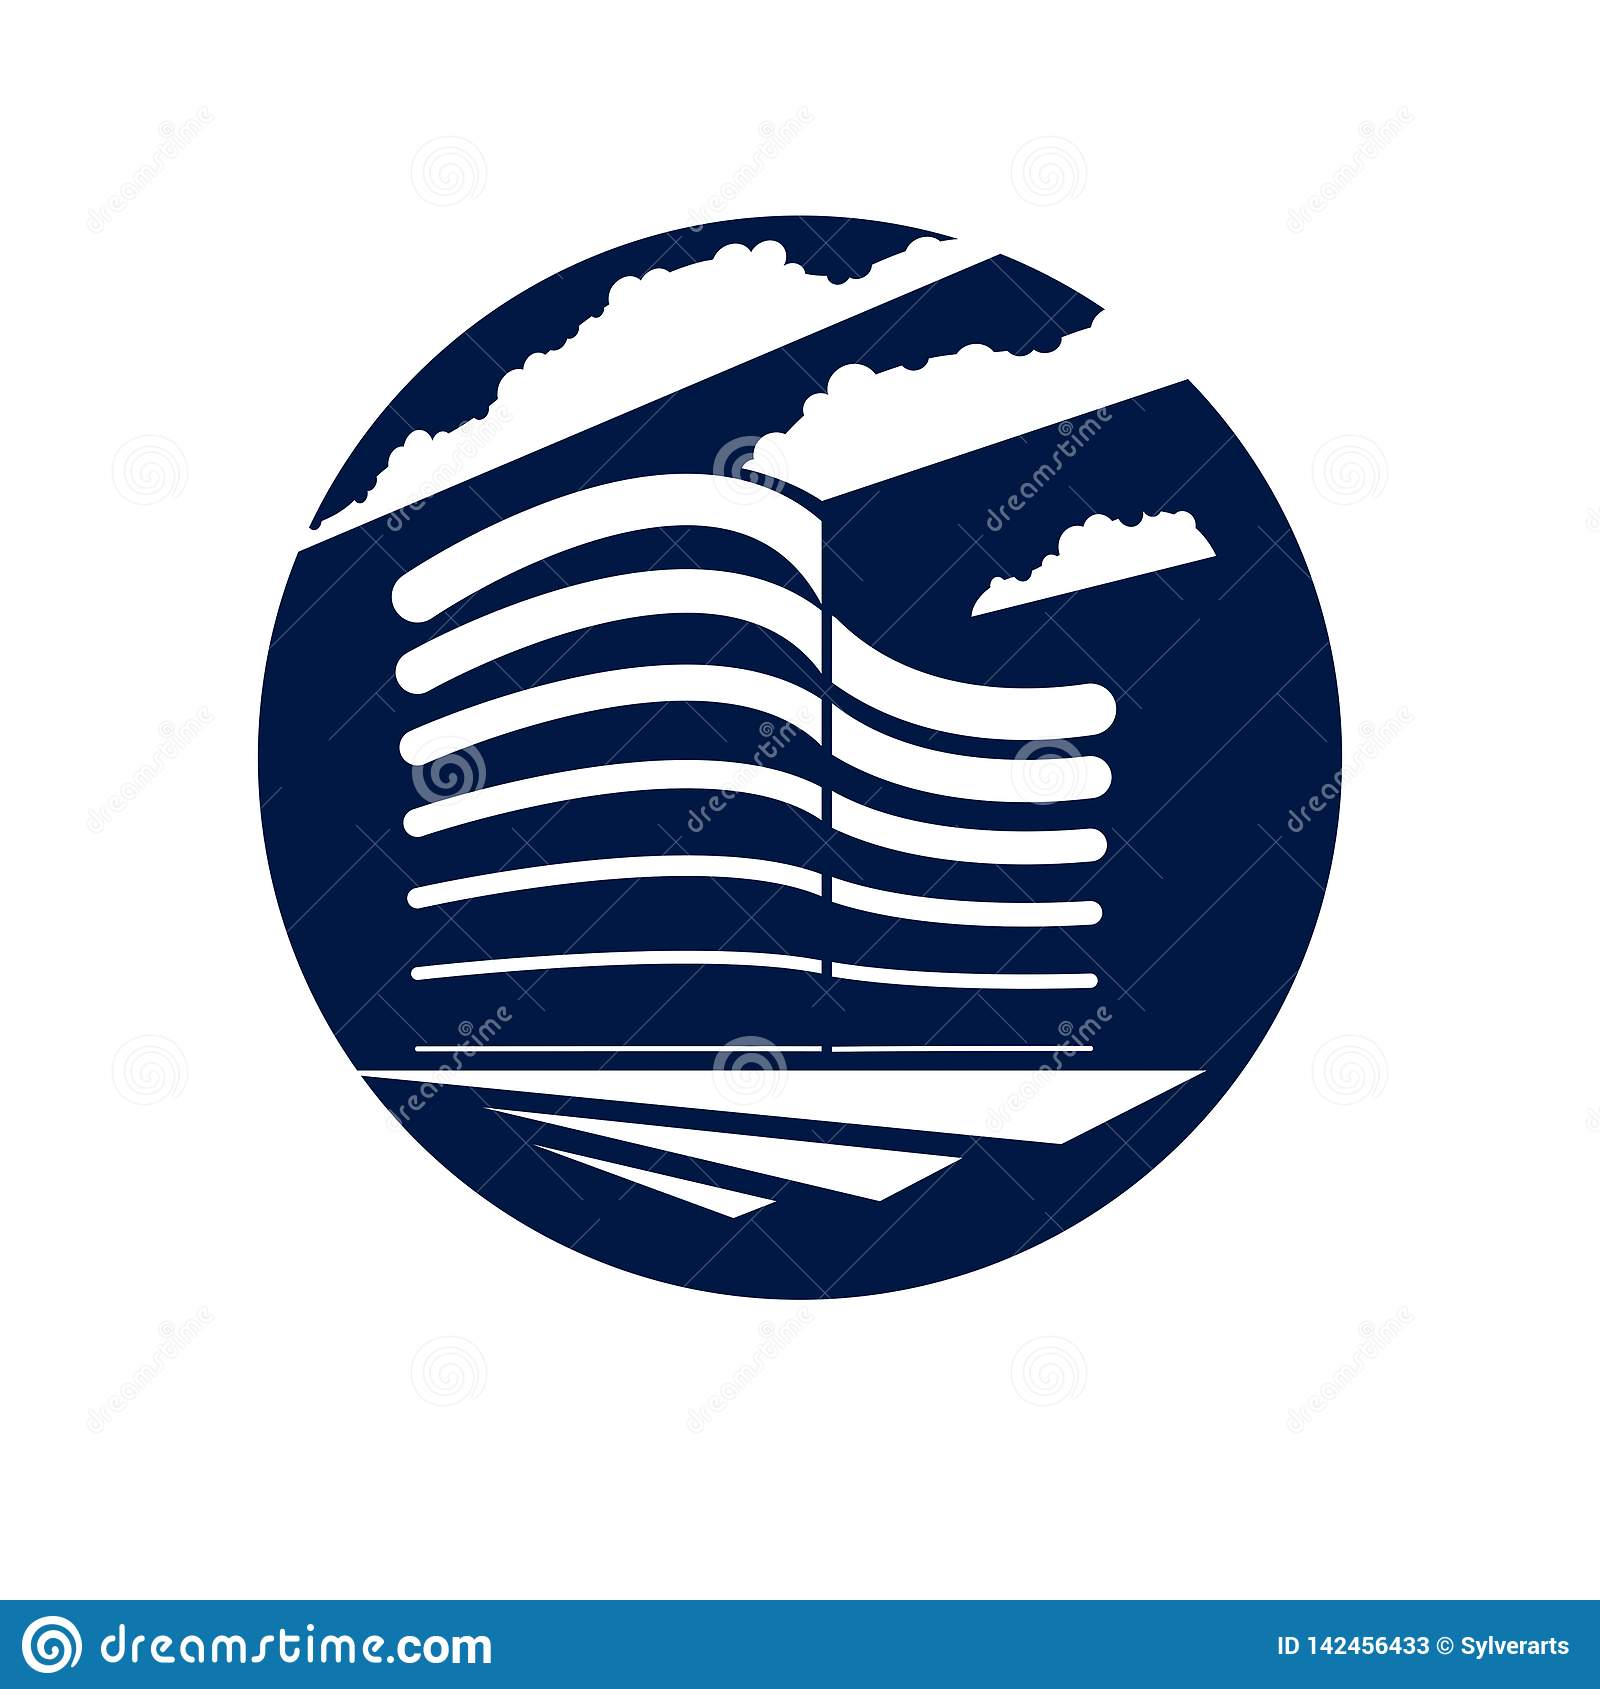 Office building round shape icon or logo, modern architecture vector illustration. Real estate realty business center design. 3D